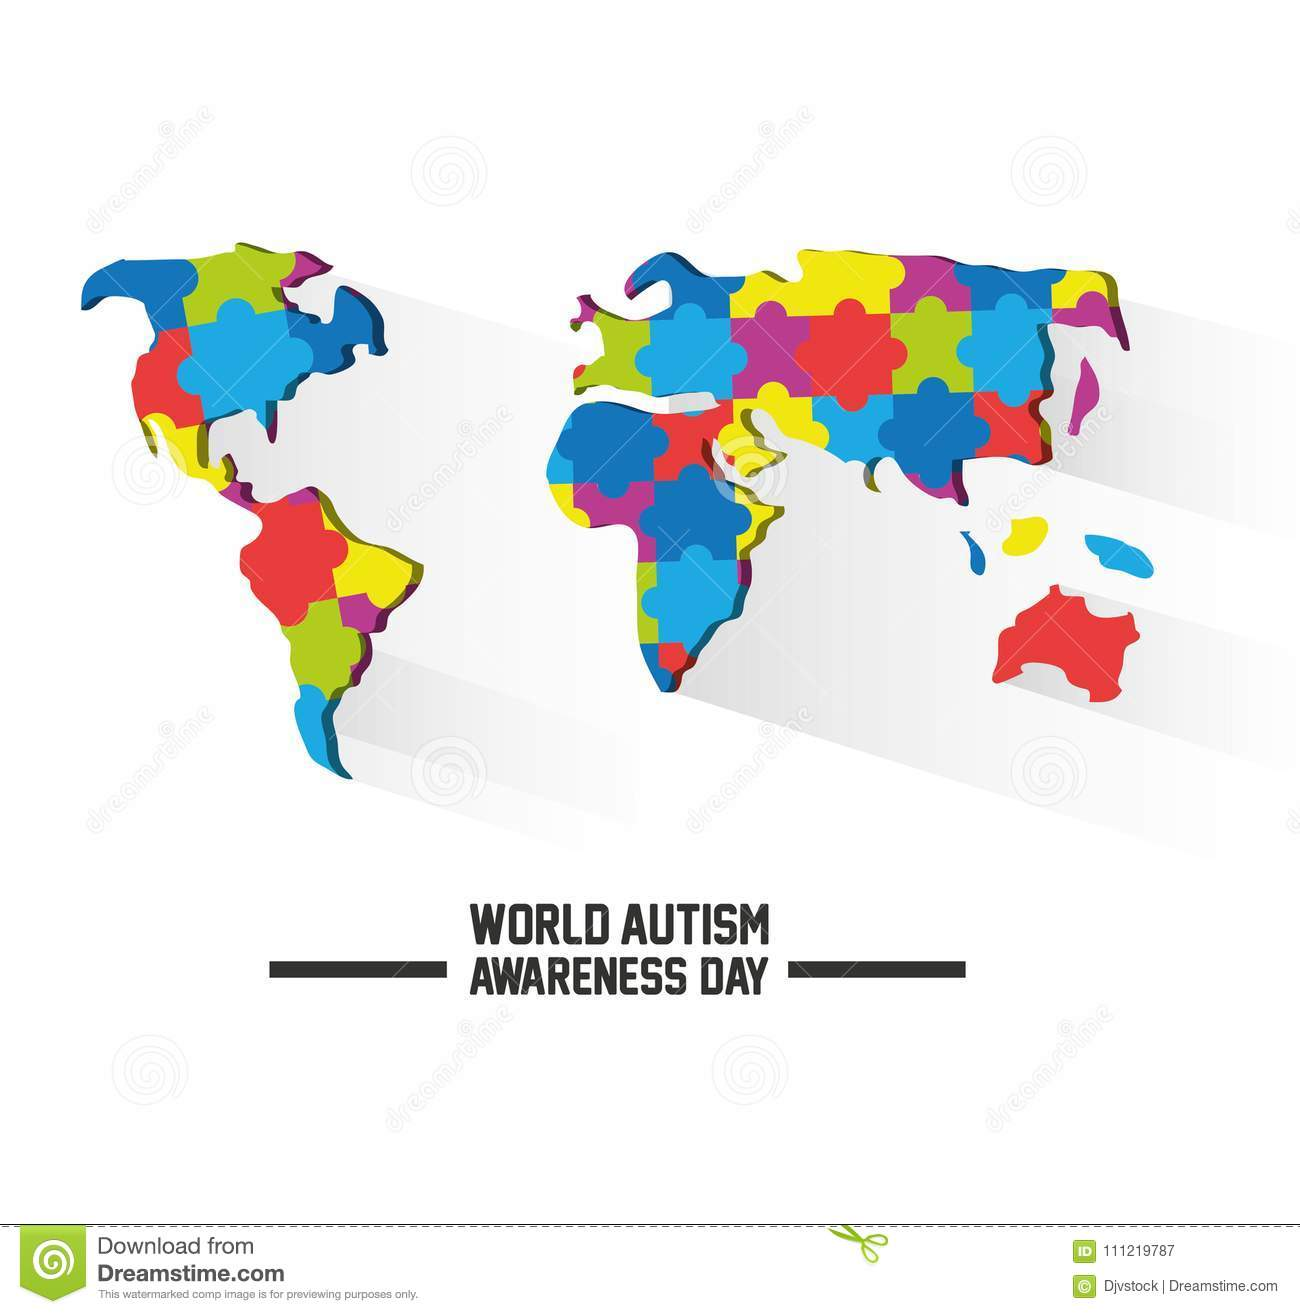 World Autism Awareness Day Design Stock Vector   Illustration of